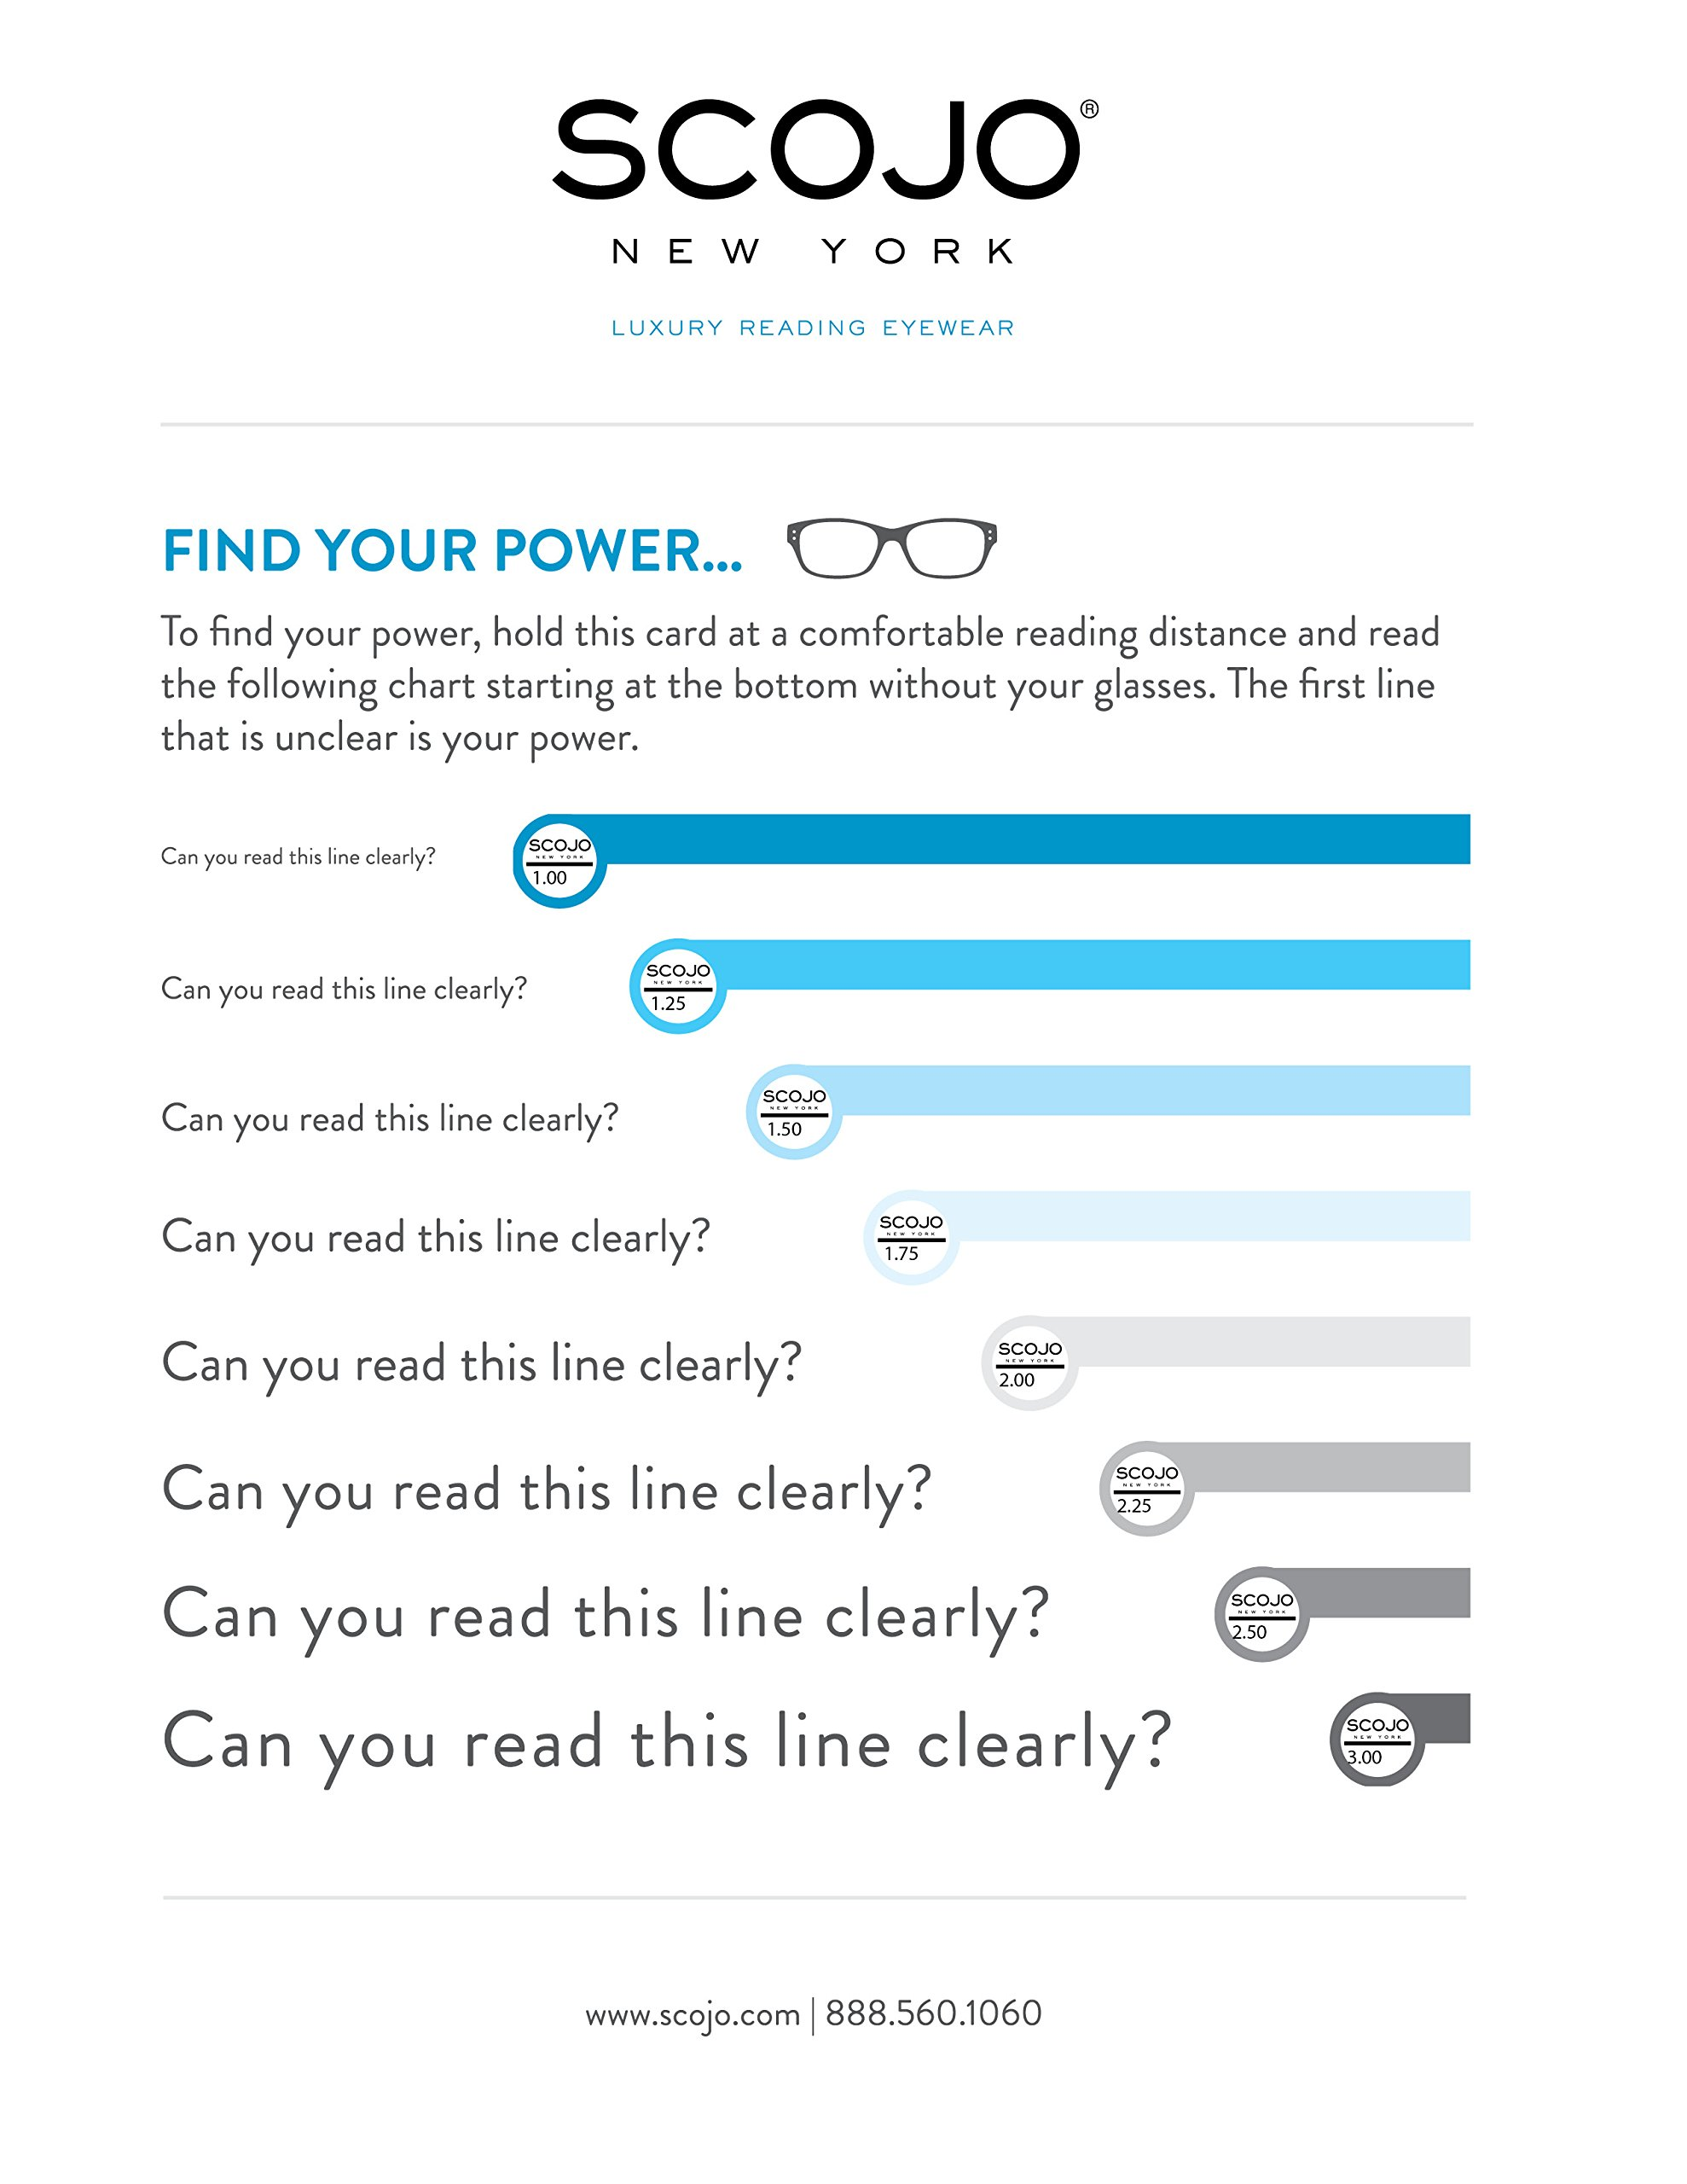 Gels - Lightweight Rimless Fashion Readers - The Original Reading Glasses for Men and Women - Tortoise (+1.50 Magnification Power) by Scojo New York (Image #8)